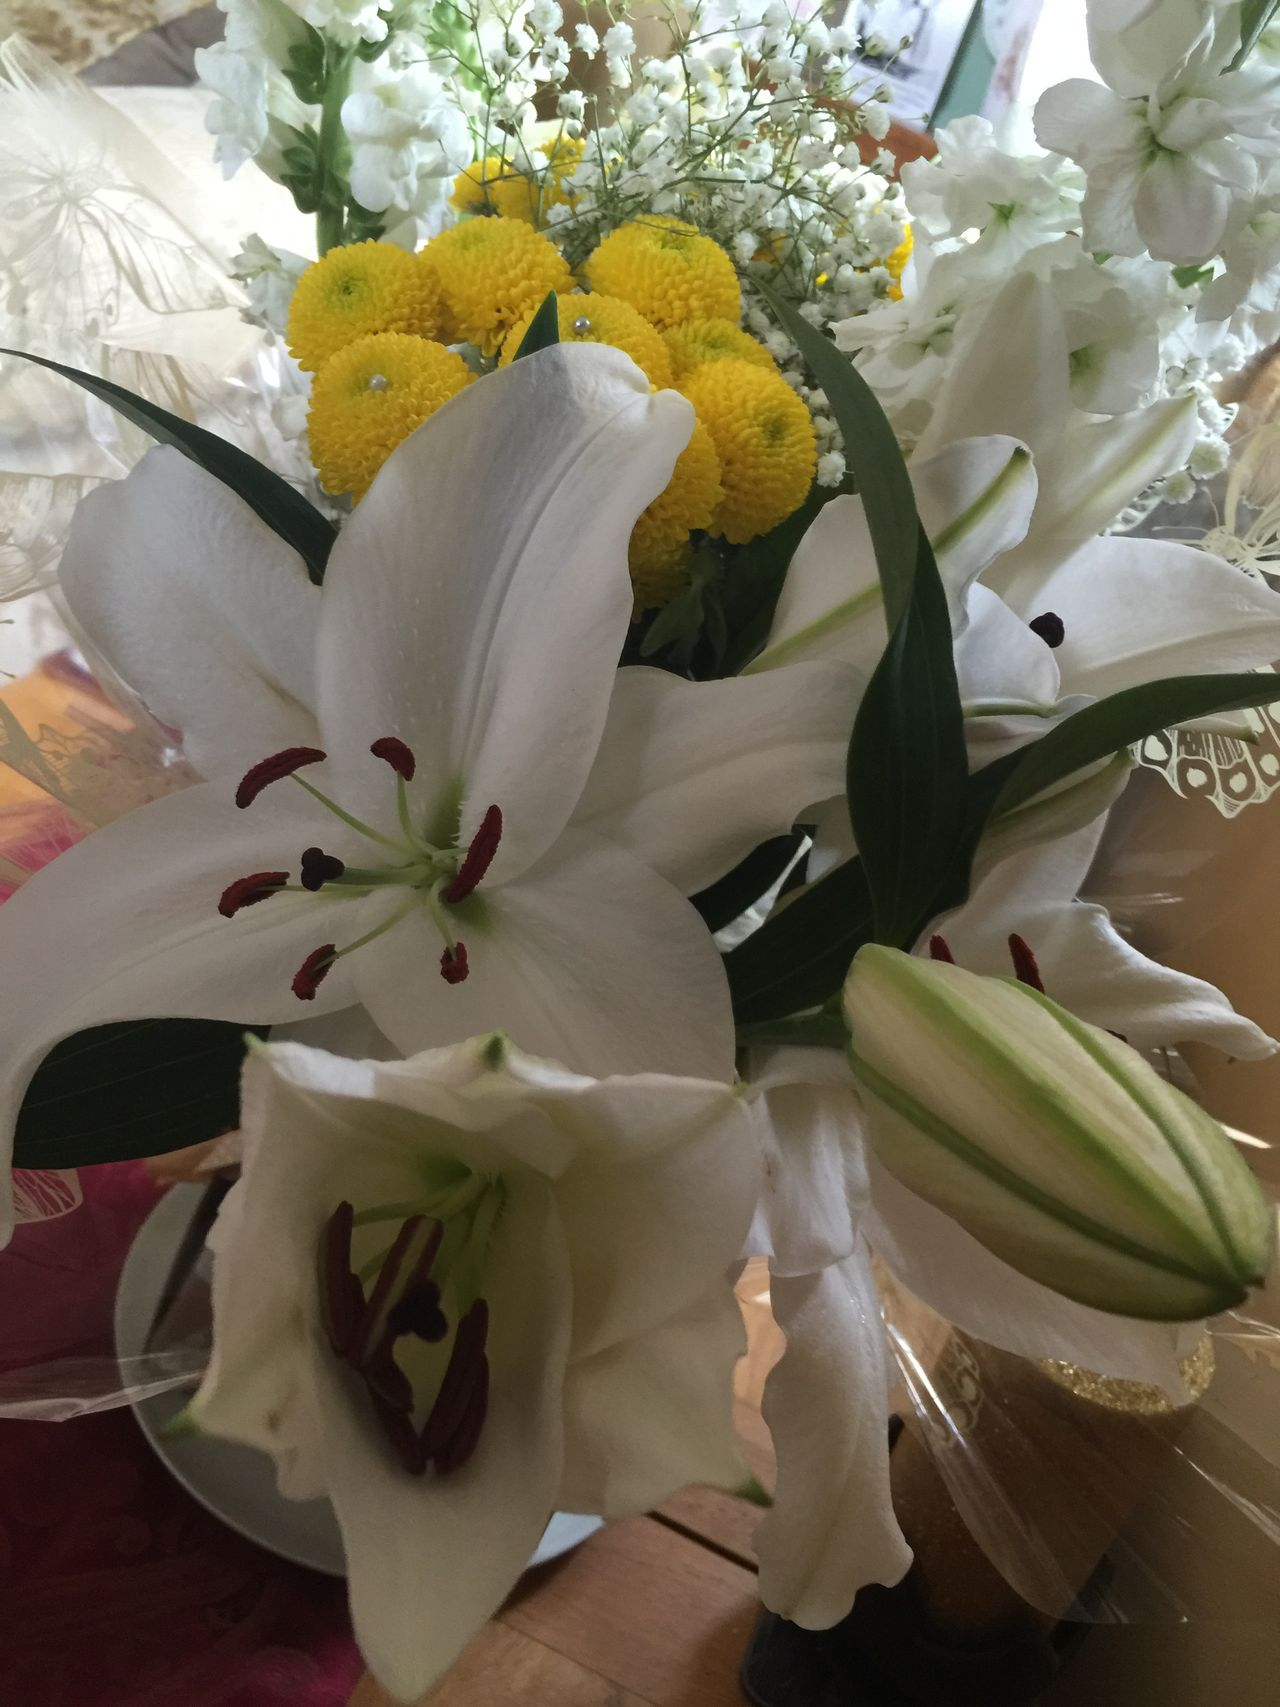 Beauty In Nature Blooming Bouquet Bunch Of Flowers Cheshire Close-up Decoration Flower Flower Arrangement Flower Head Flowers Fragility Freshness Growth High Angle View Indoors  Lillies Urban Spring Fever Lily Nature Petal Pollen Table Vase White Color